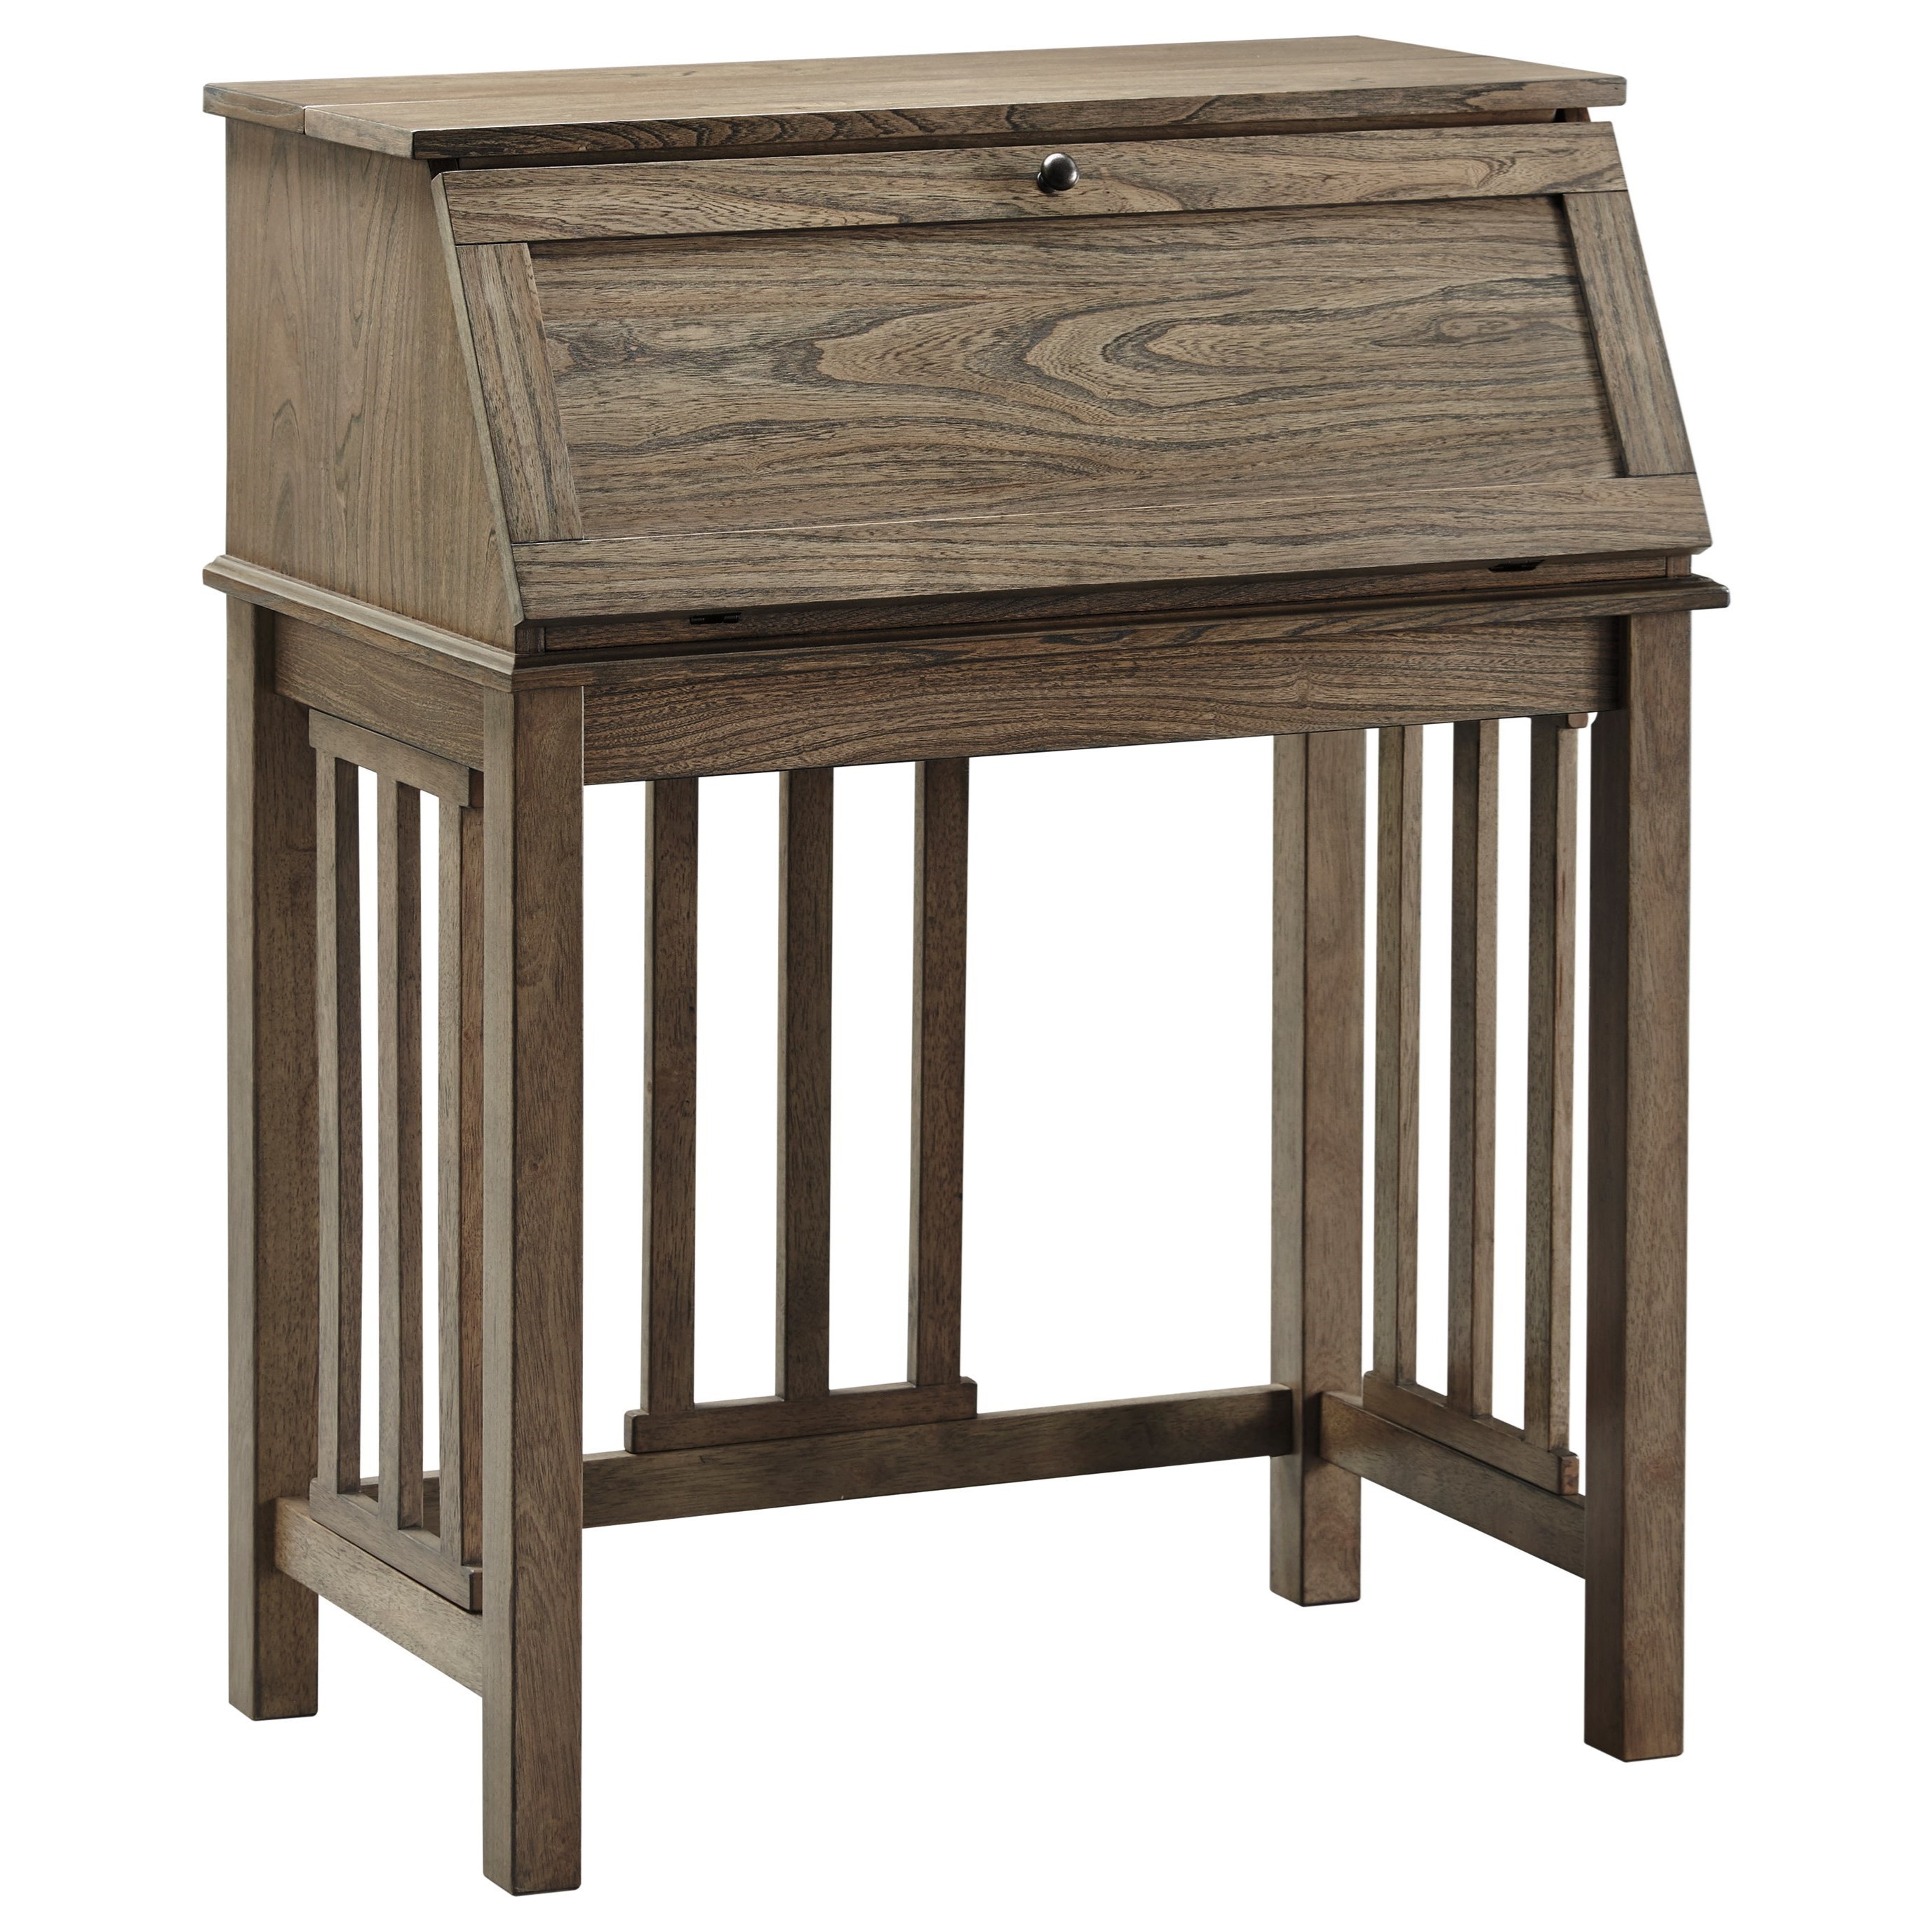 Signature Design By Ashley Dexifield Home Office Drop Front Desk   Item  Number: H209